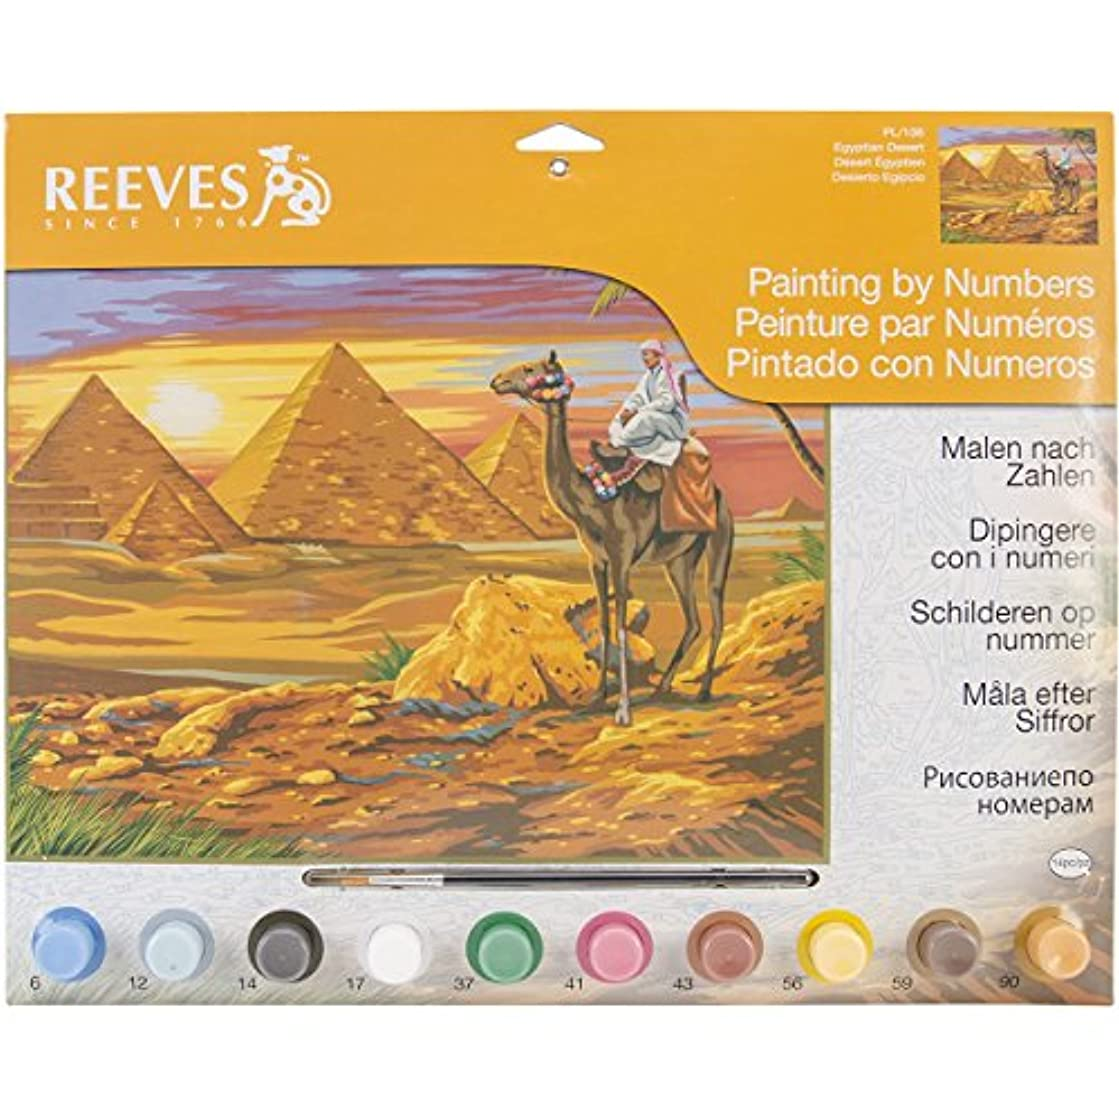 Reeves Large Acrylic Painting By Numbers - Egyptian Desert